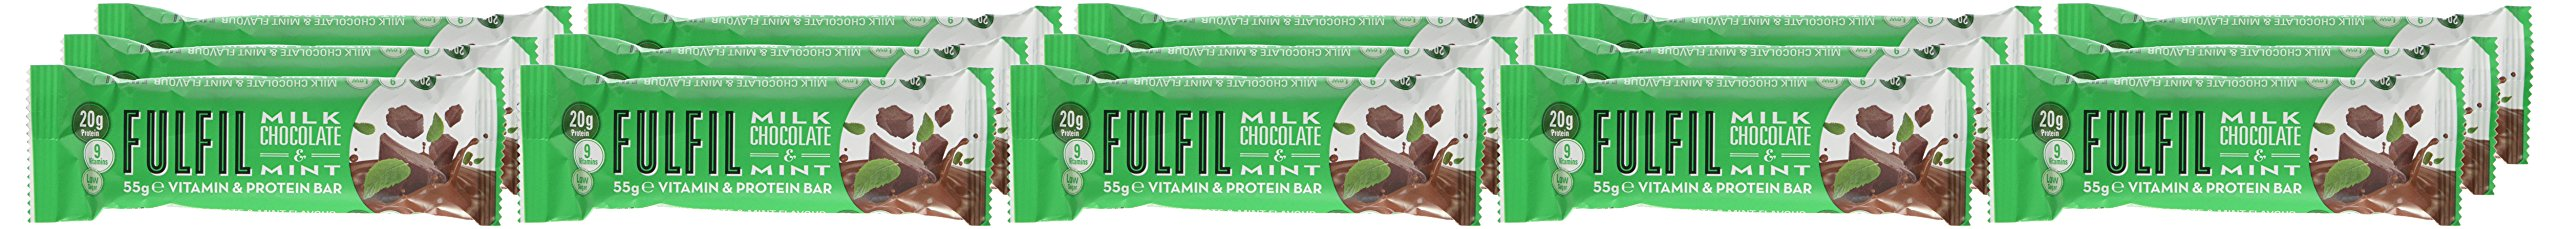 Fulfil Milk Chocolate & Mint Vitamin and Protein Bar - Pack of 15 by Fulfil (Image #2)